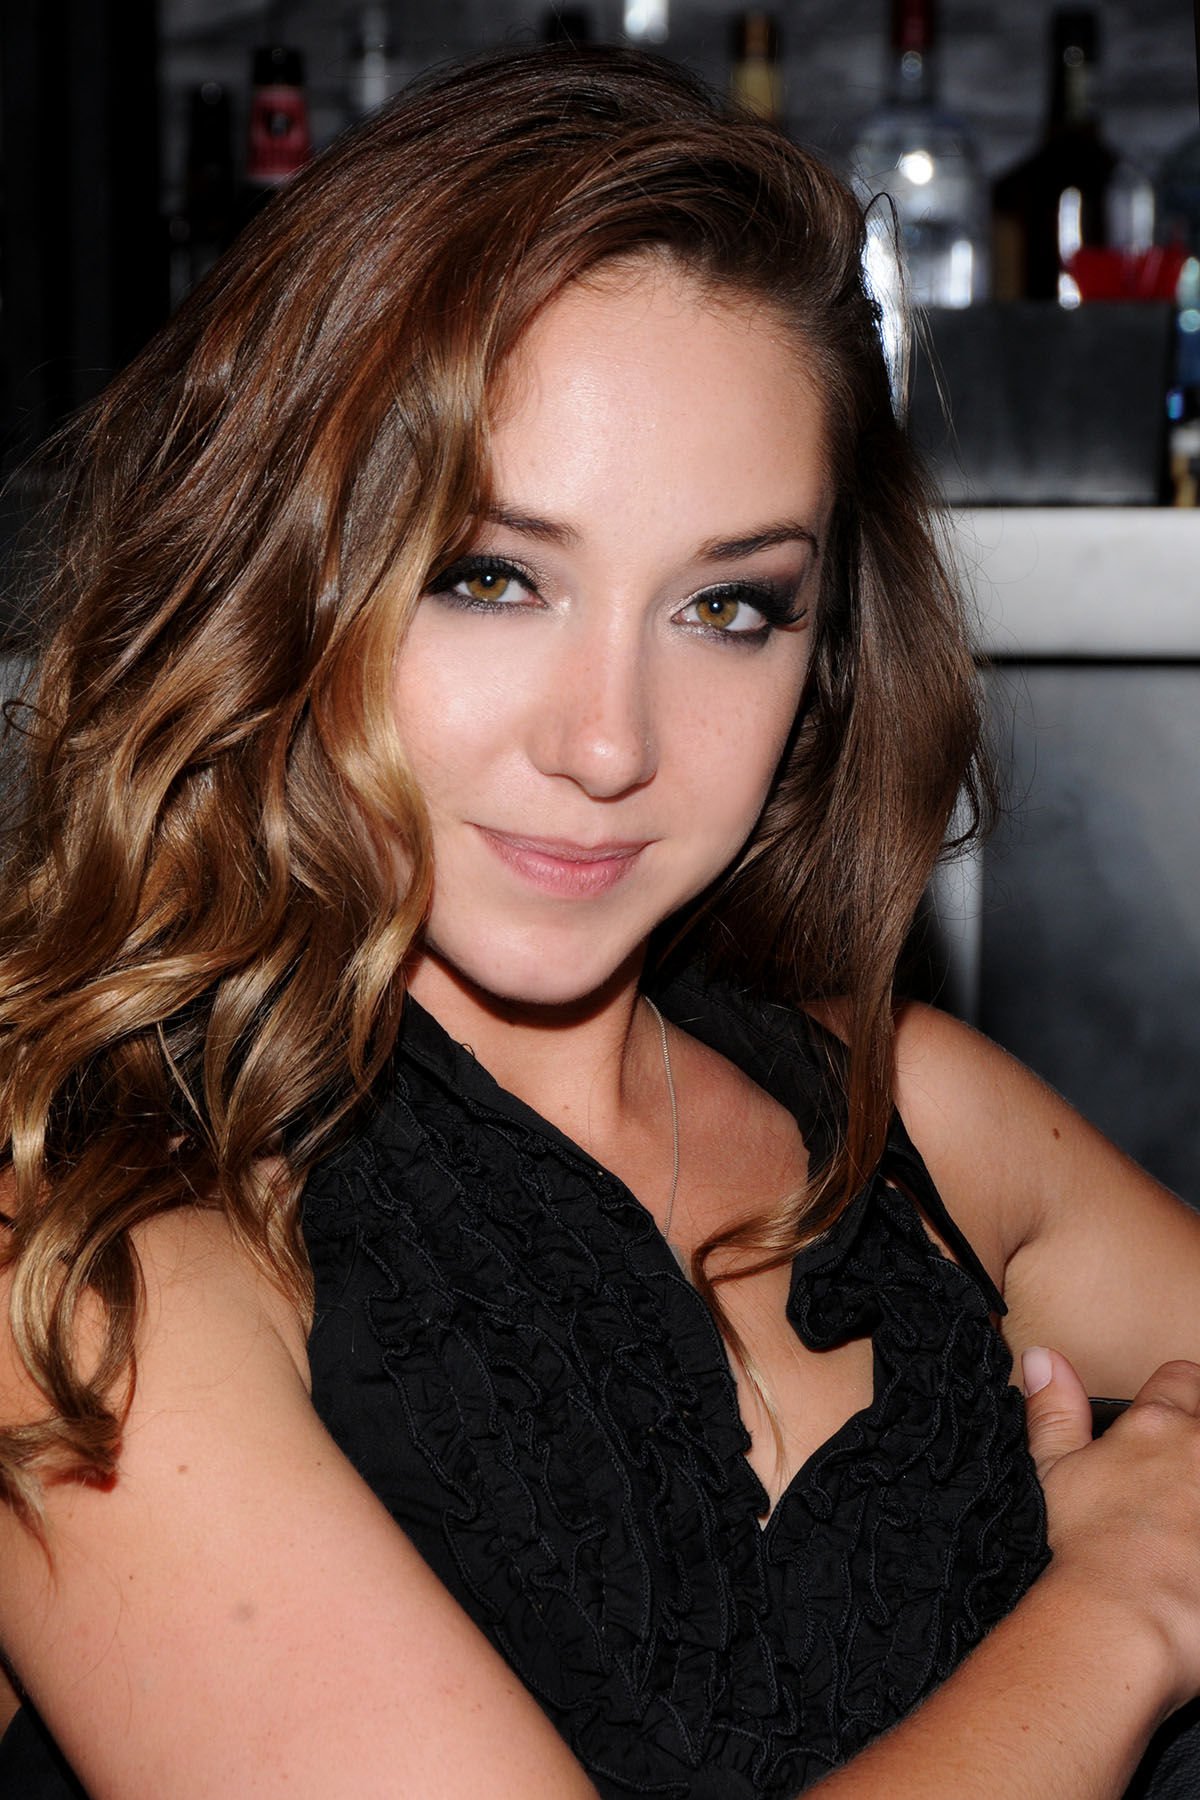 Photo of Remy LaCroix: American pornographic actress